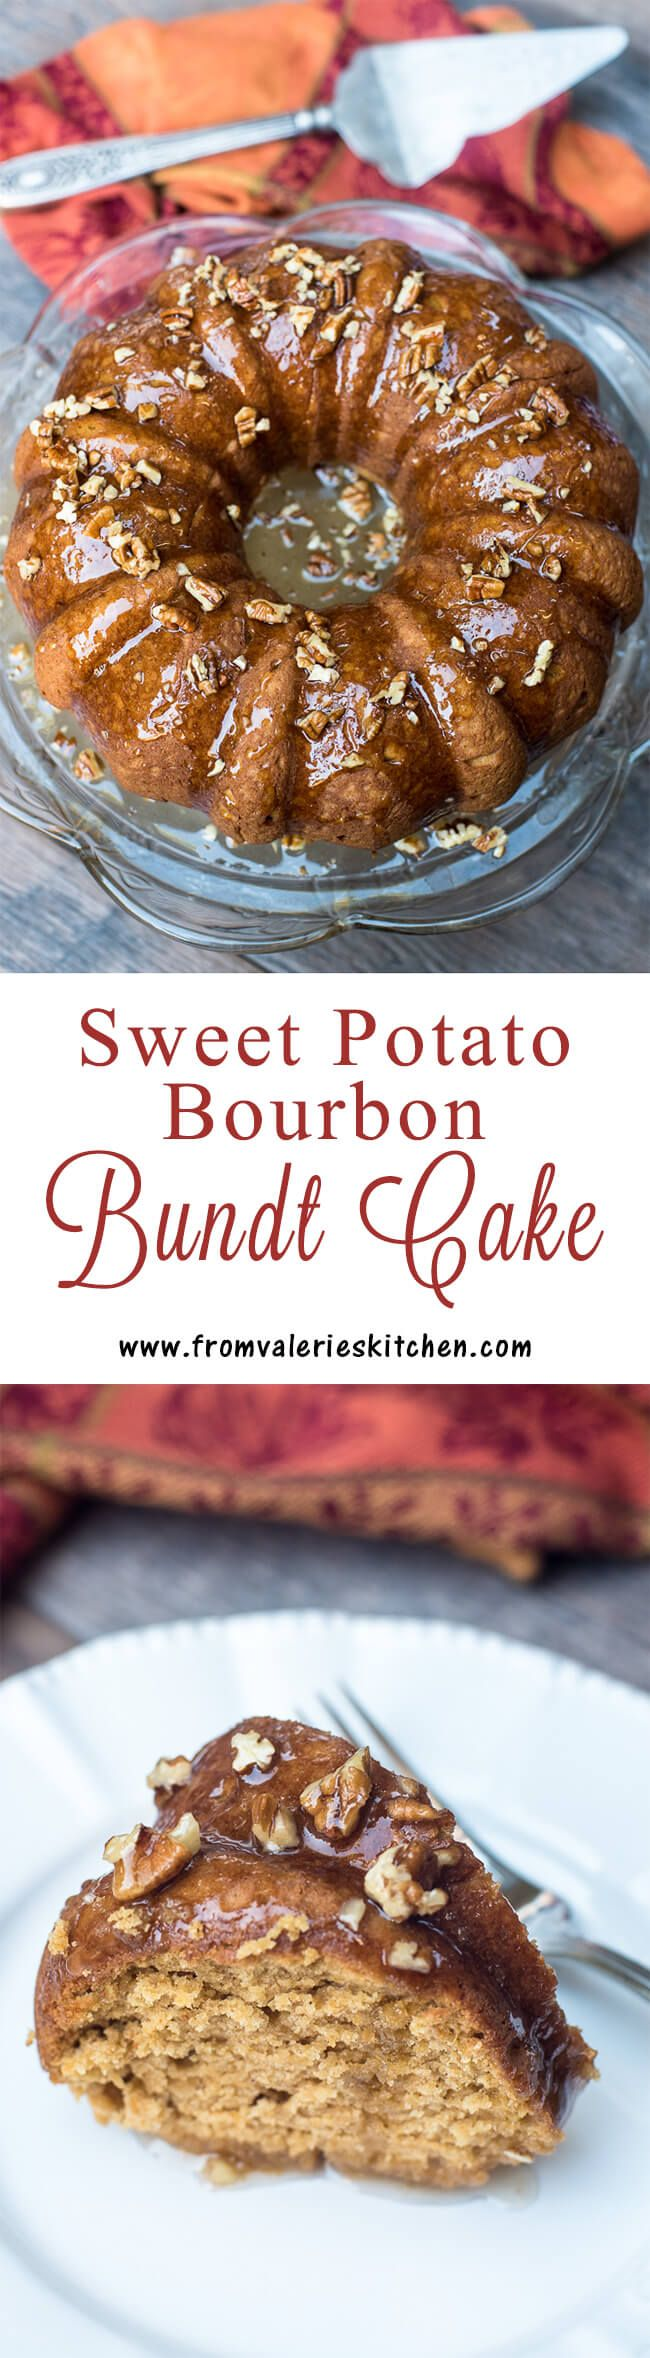 A sweet, nostalgic cake that is perfect for the holidays! ~ http://www.fromvalerieskitchen.com